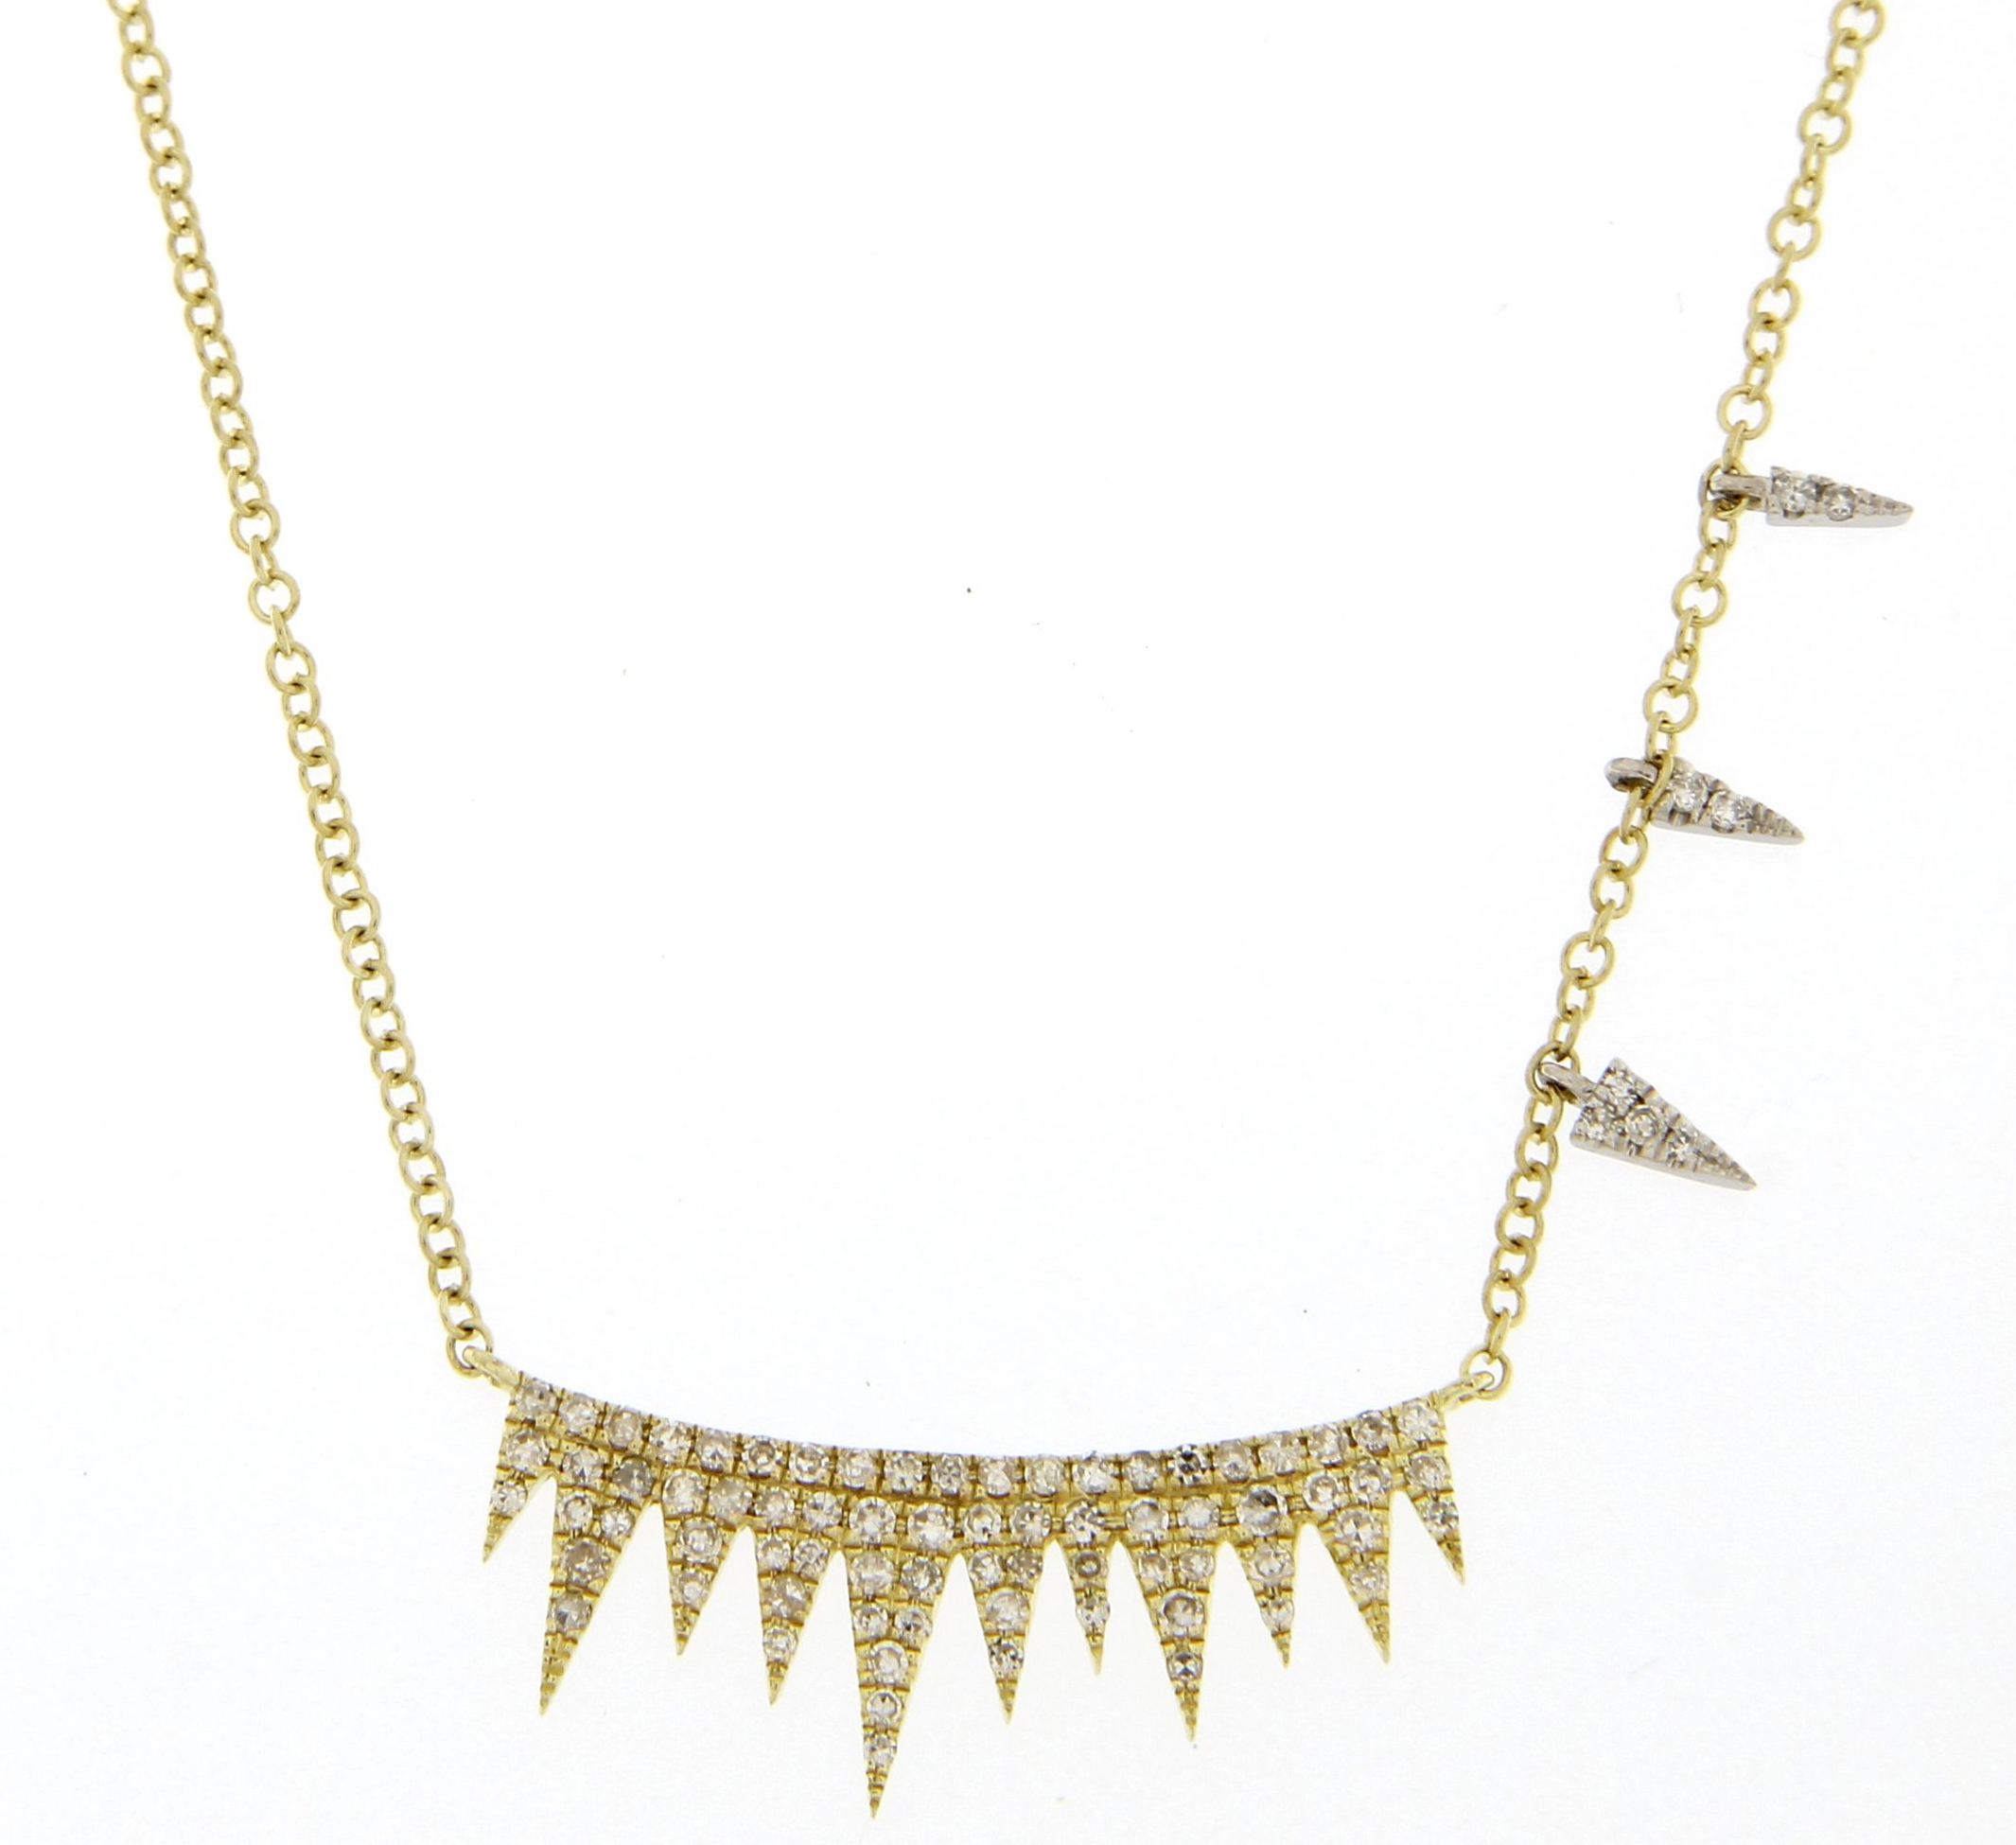 Meira T necklace | JCK On Your Market